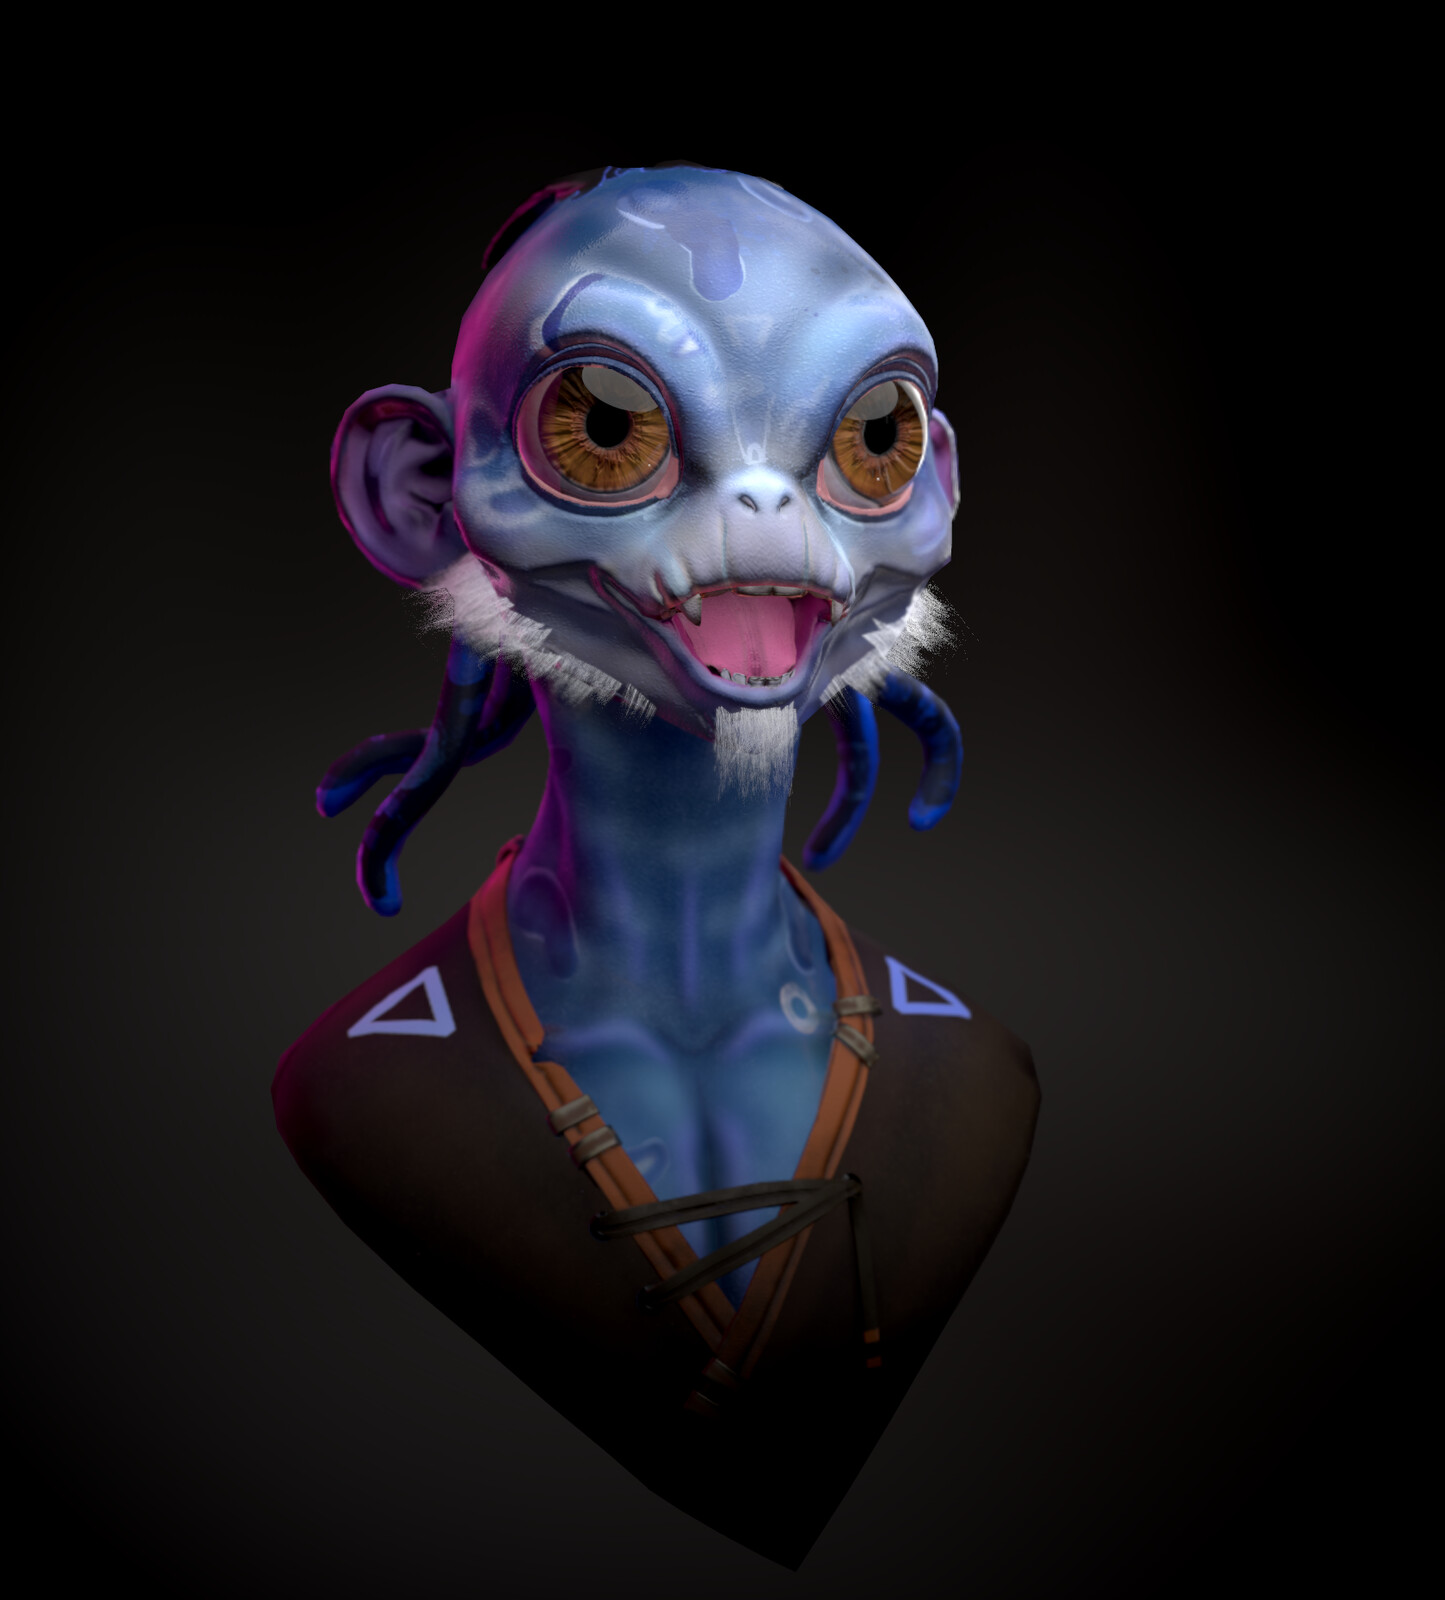 Real time render in marmoset